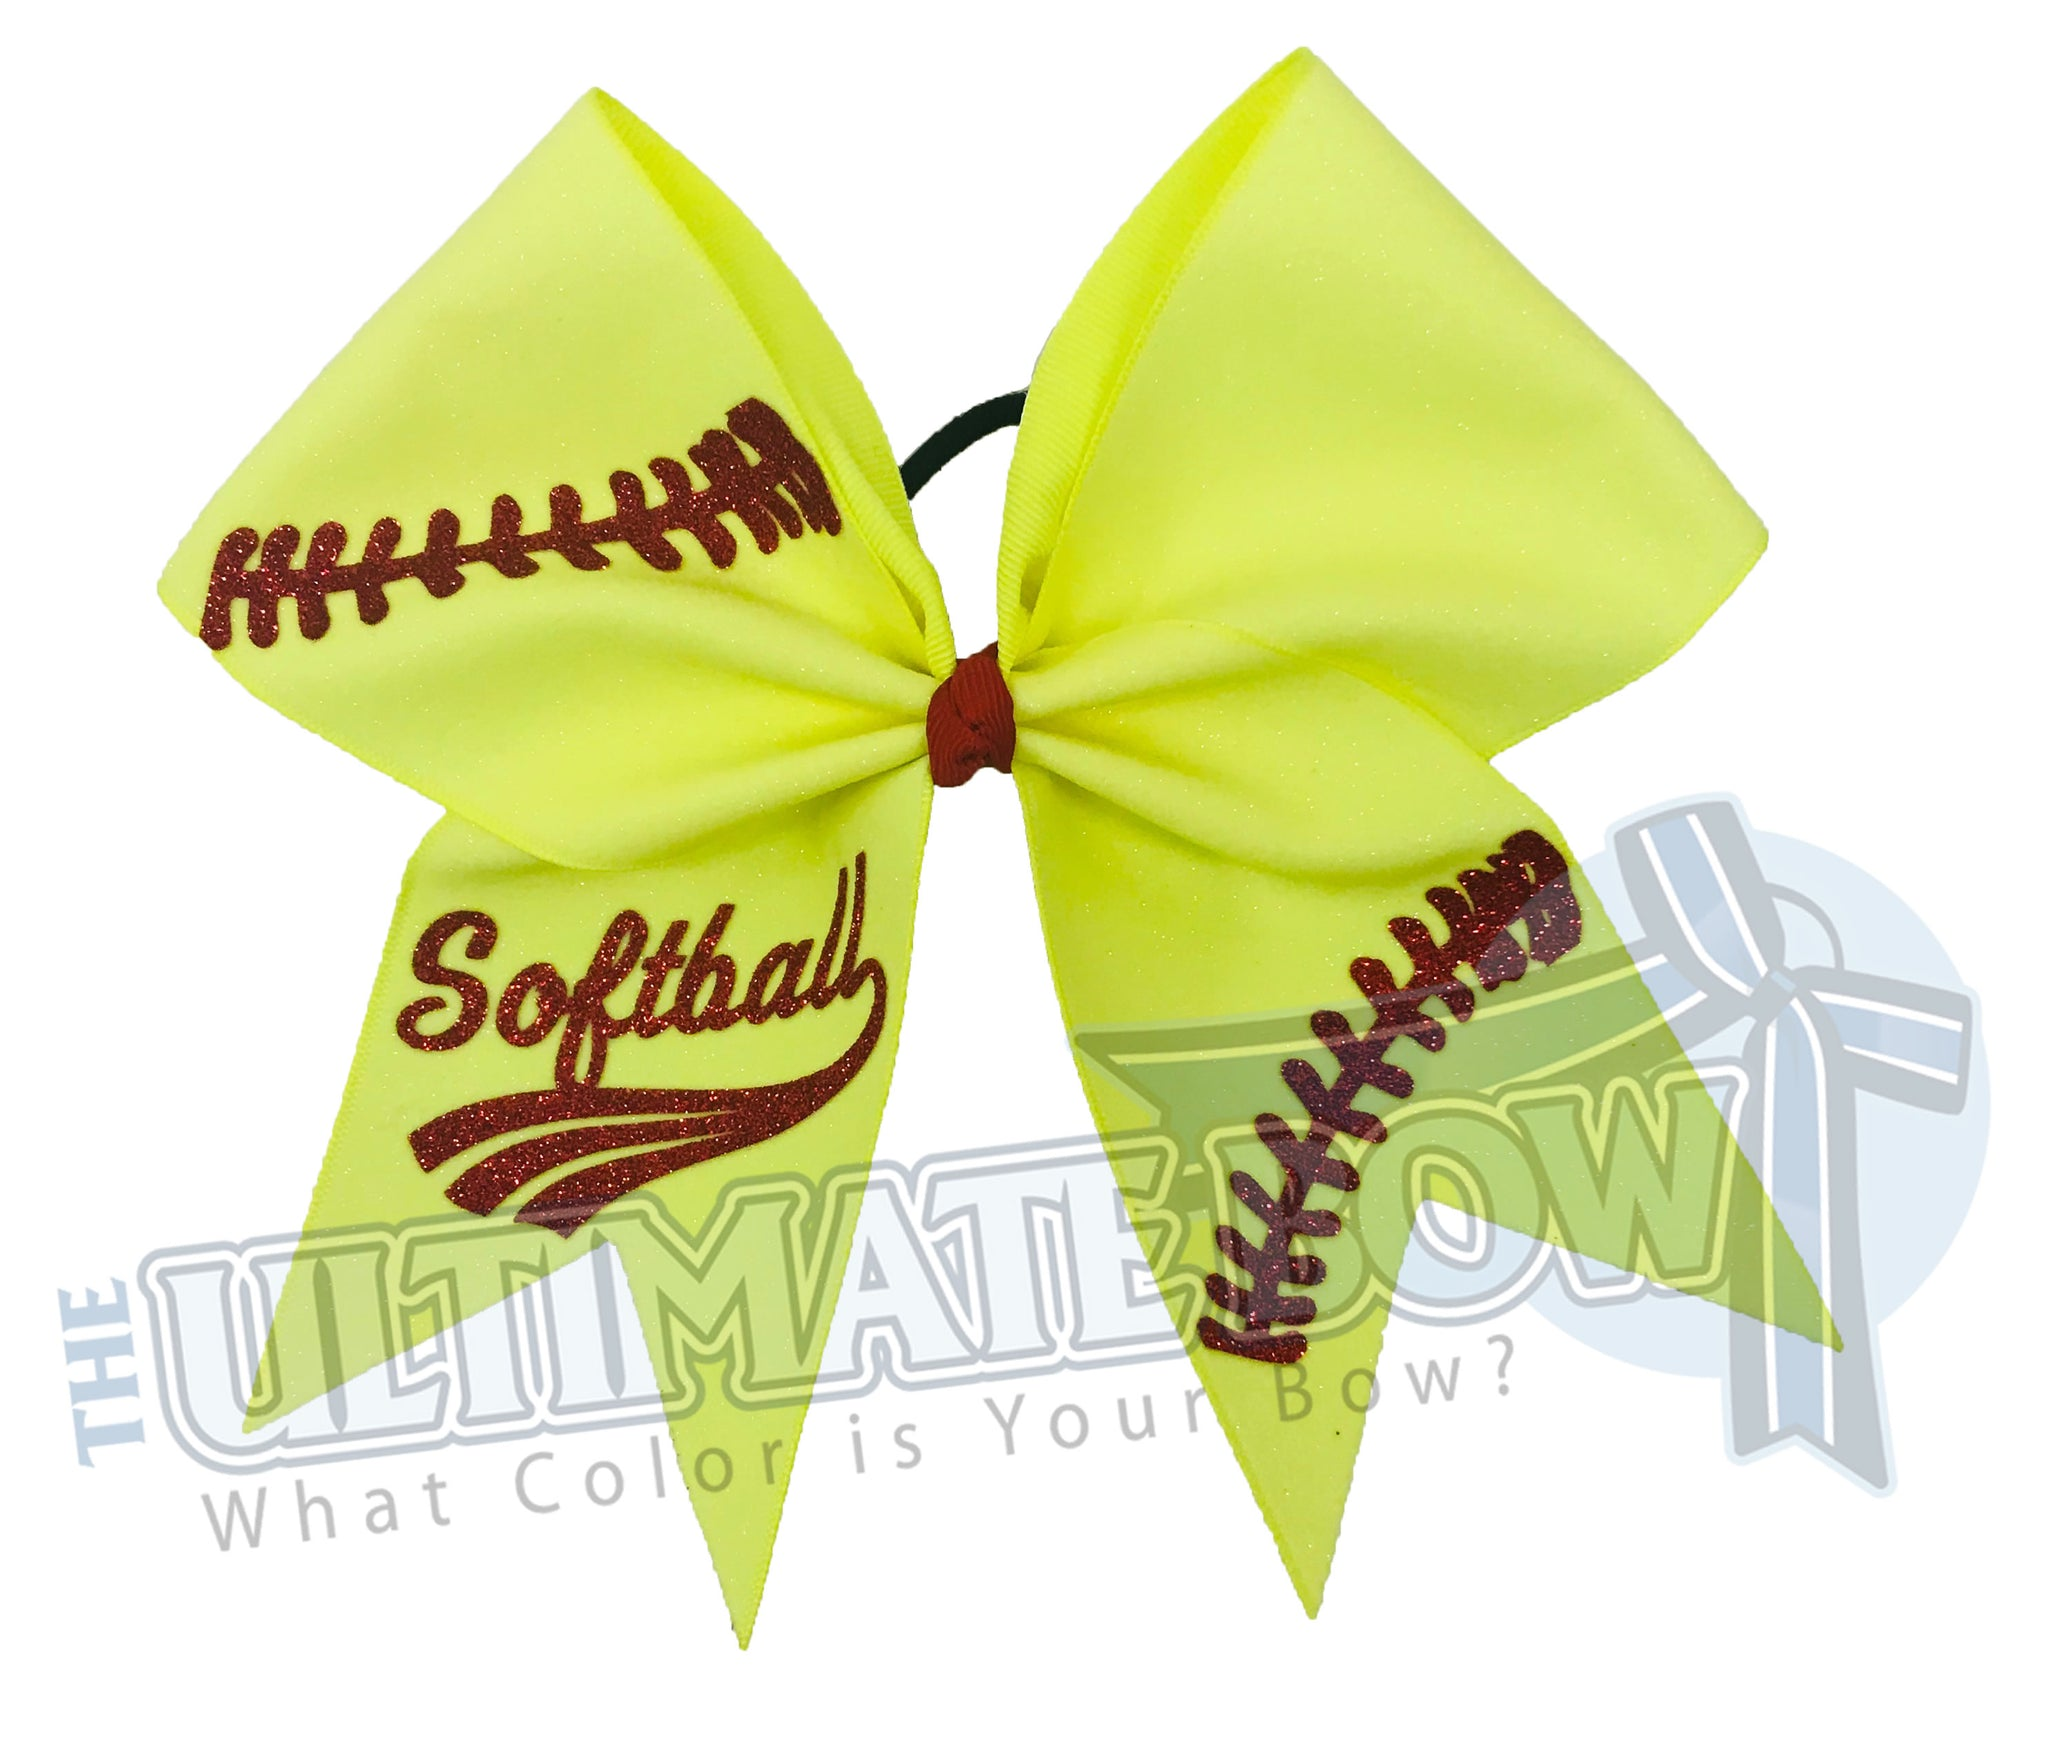 ultimate-softball-bow-neon-yellow-glitter-red-glitter-laces-hair-bow-laces-softball-bow